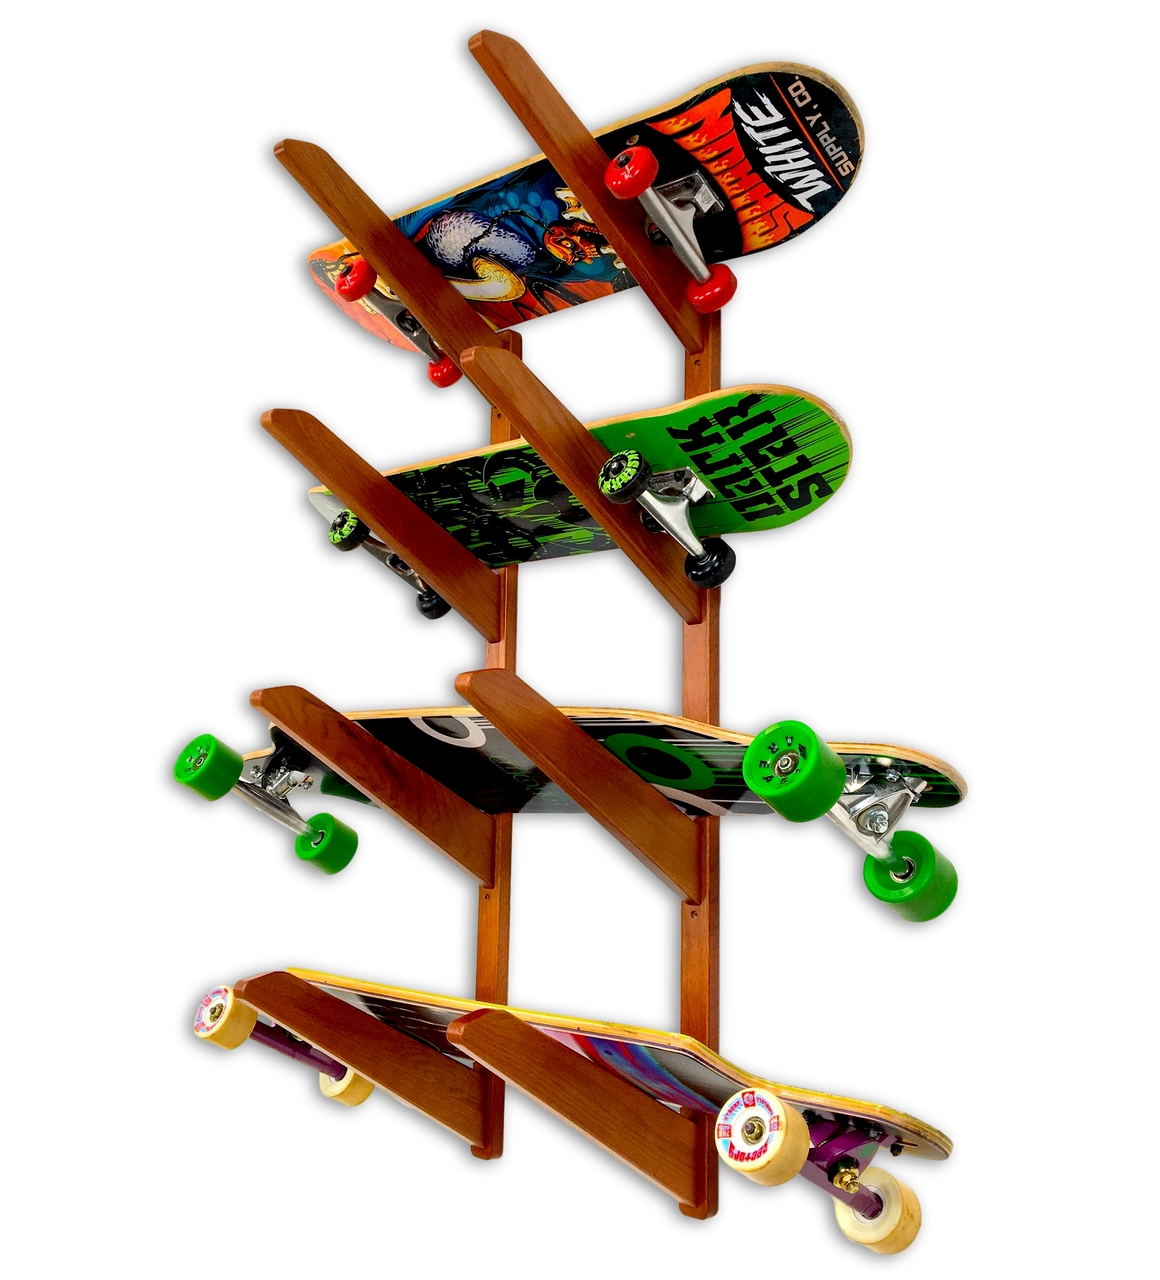 124d453e Timber Skateboard Wall Rack | Solid Oak | Holds up to 4 Skateboards ...